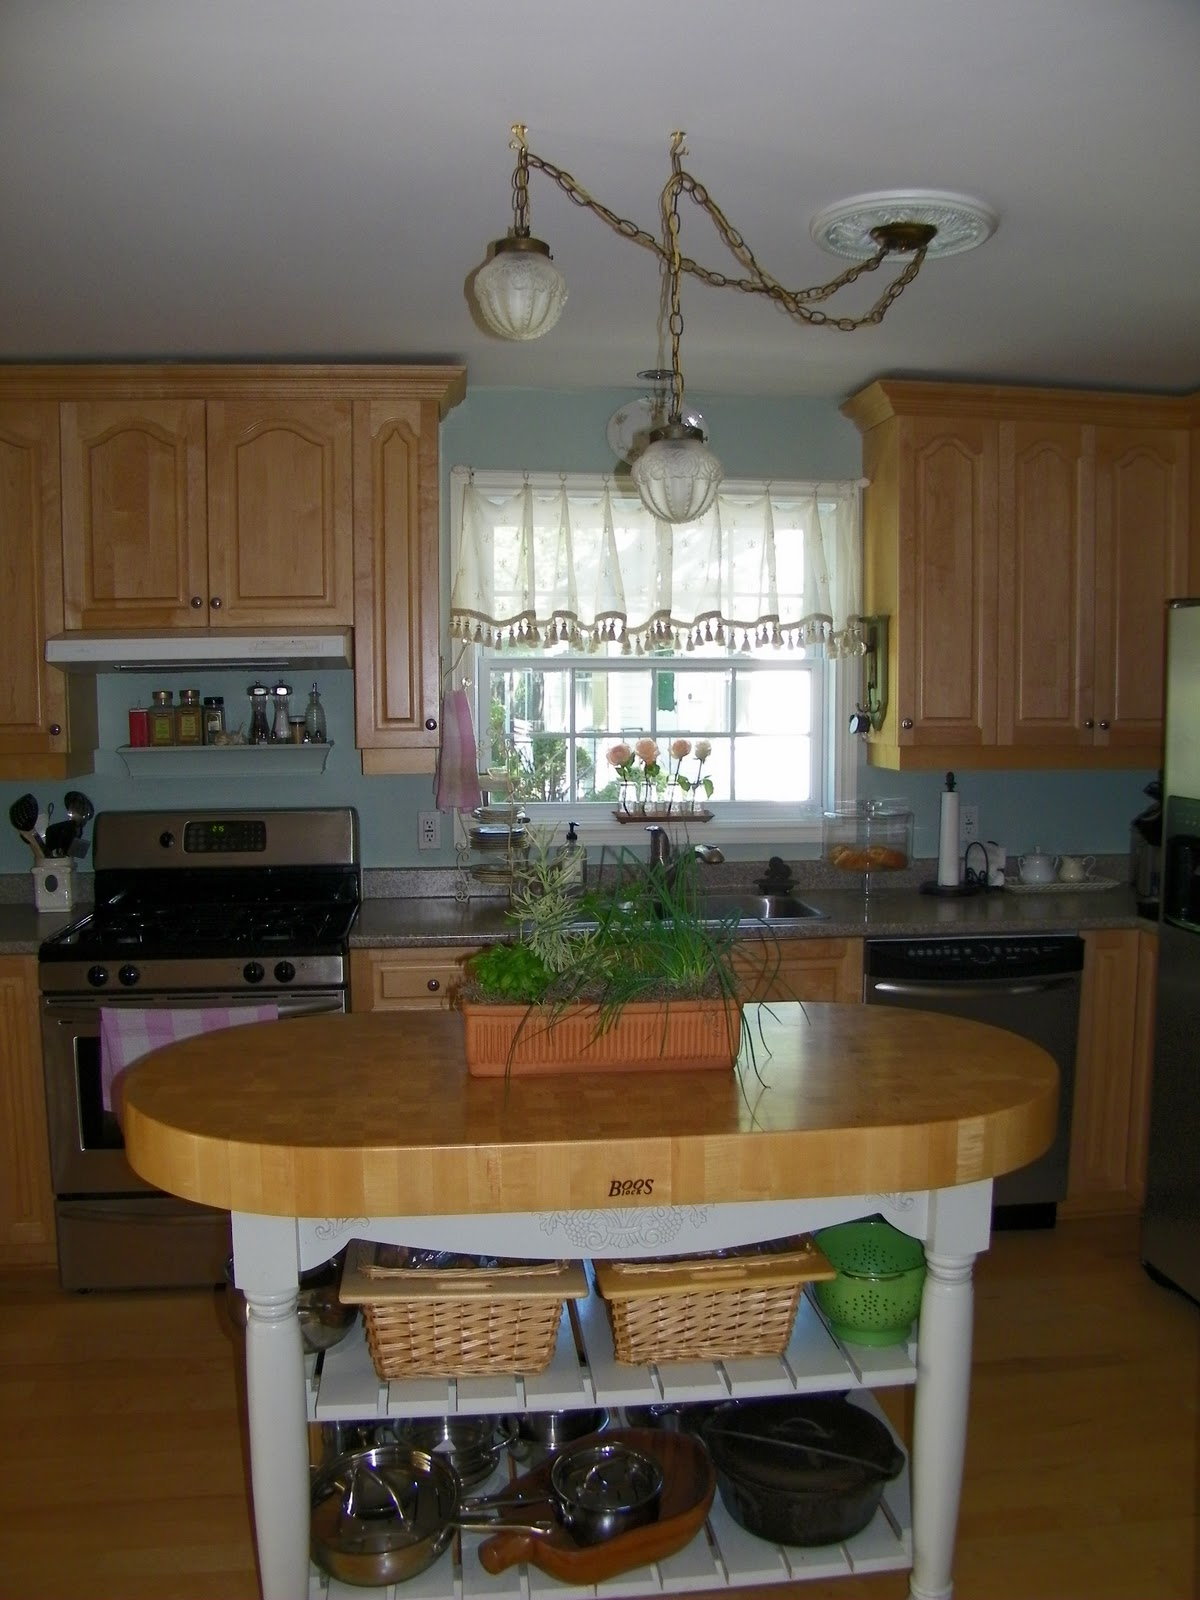 Laminate Countertop Paint Uk : ... The kitchen with maple cabinets and faux granite laminate countertops